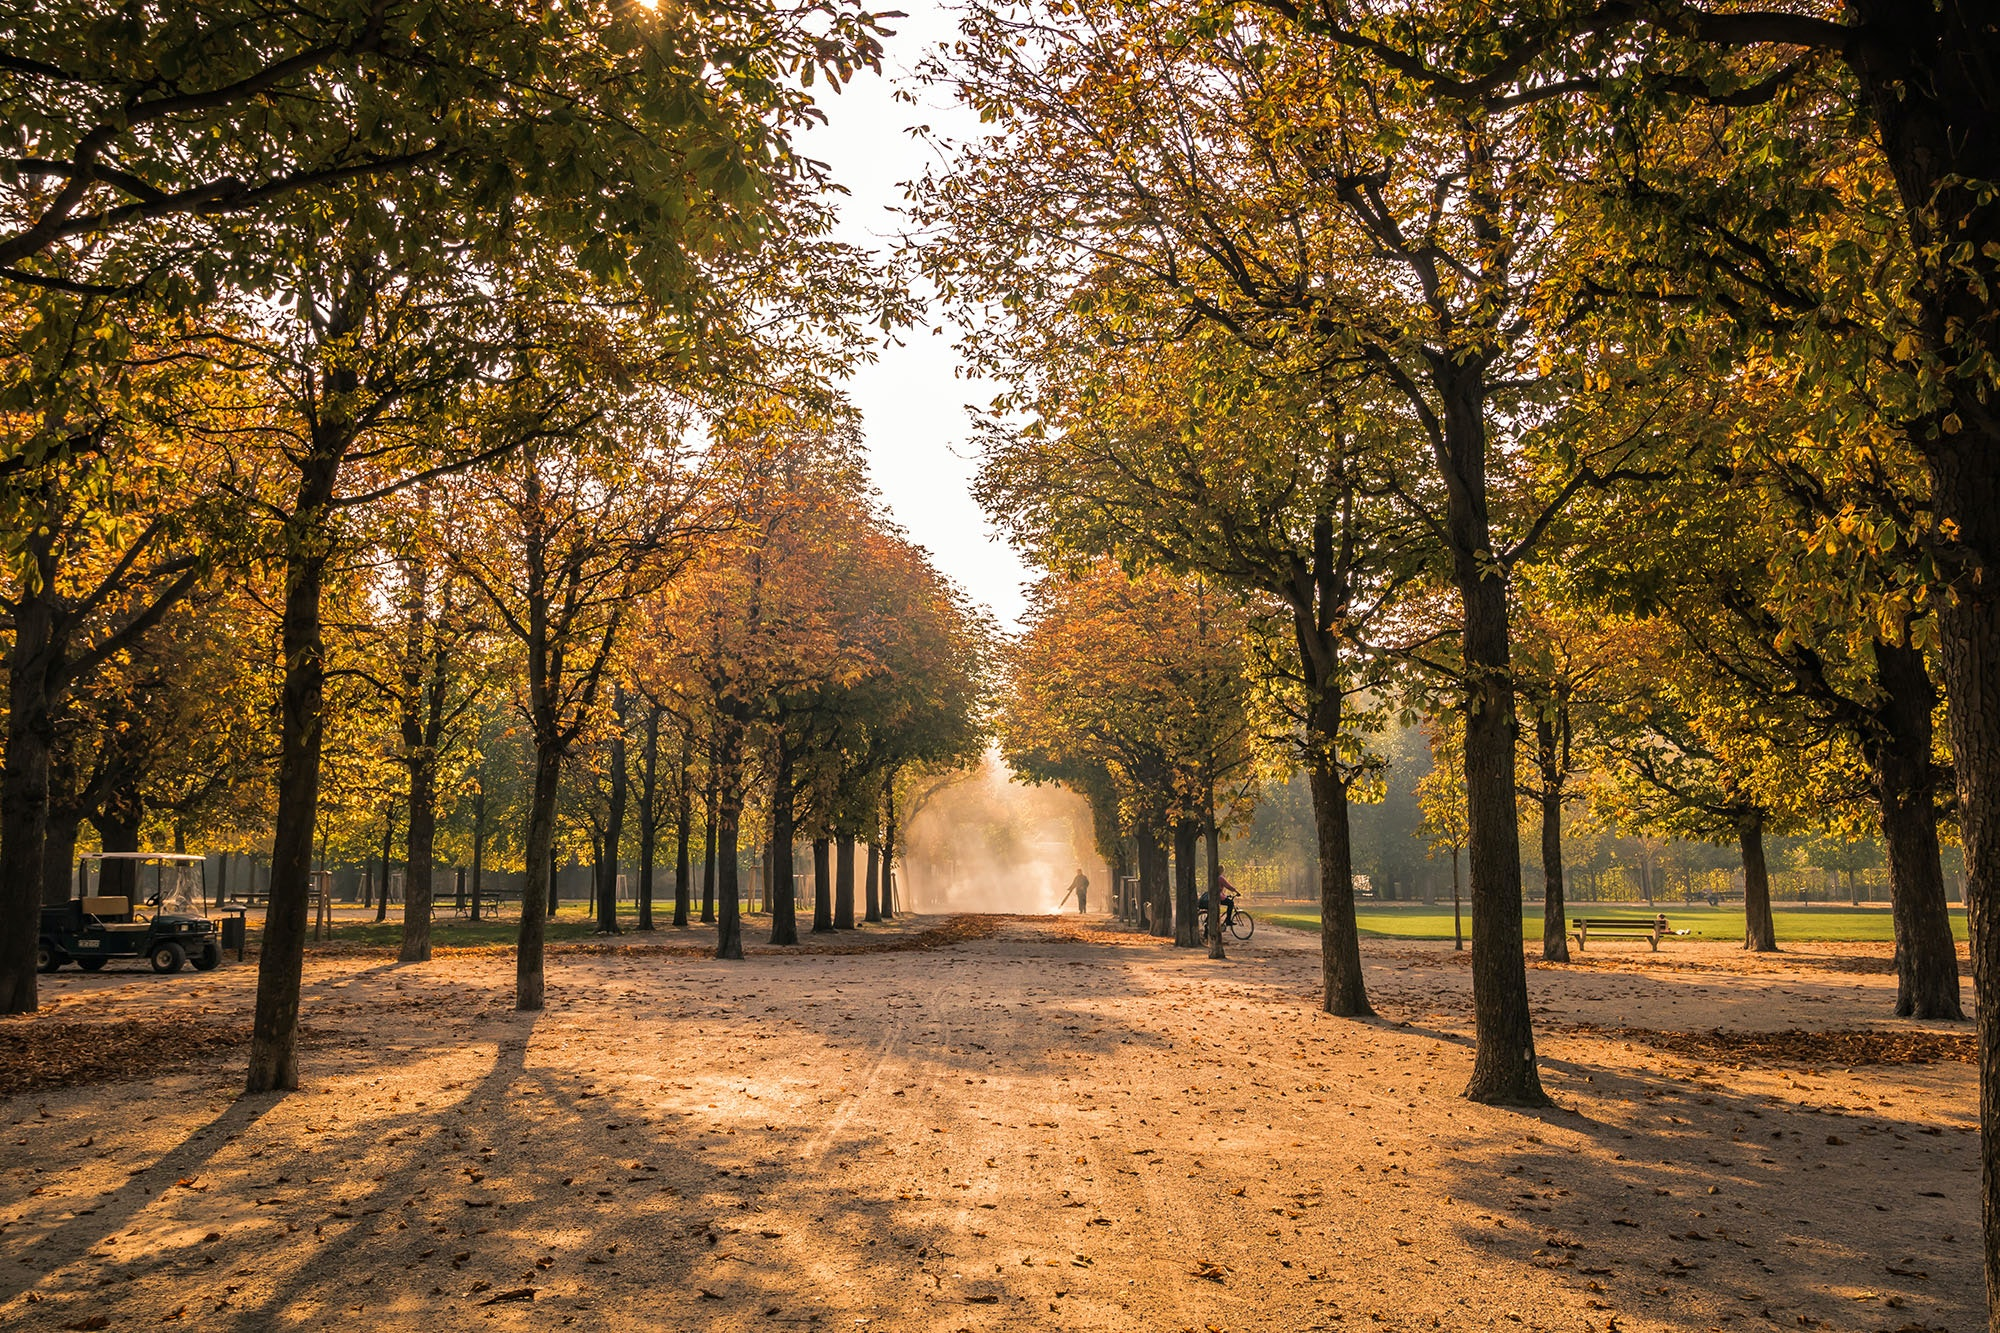 Vienna's Augarten is beautiful place to watch the leaves change in the fall.